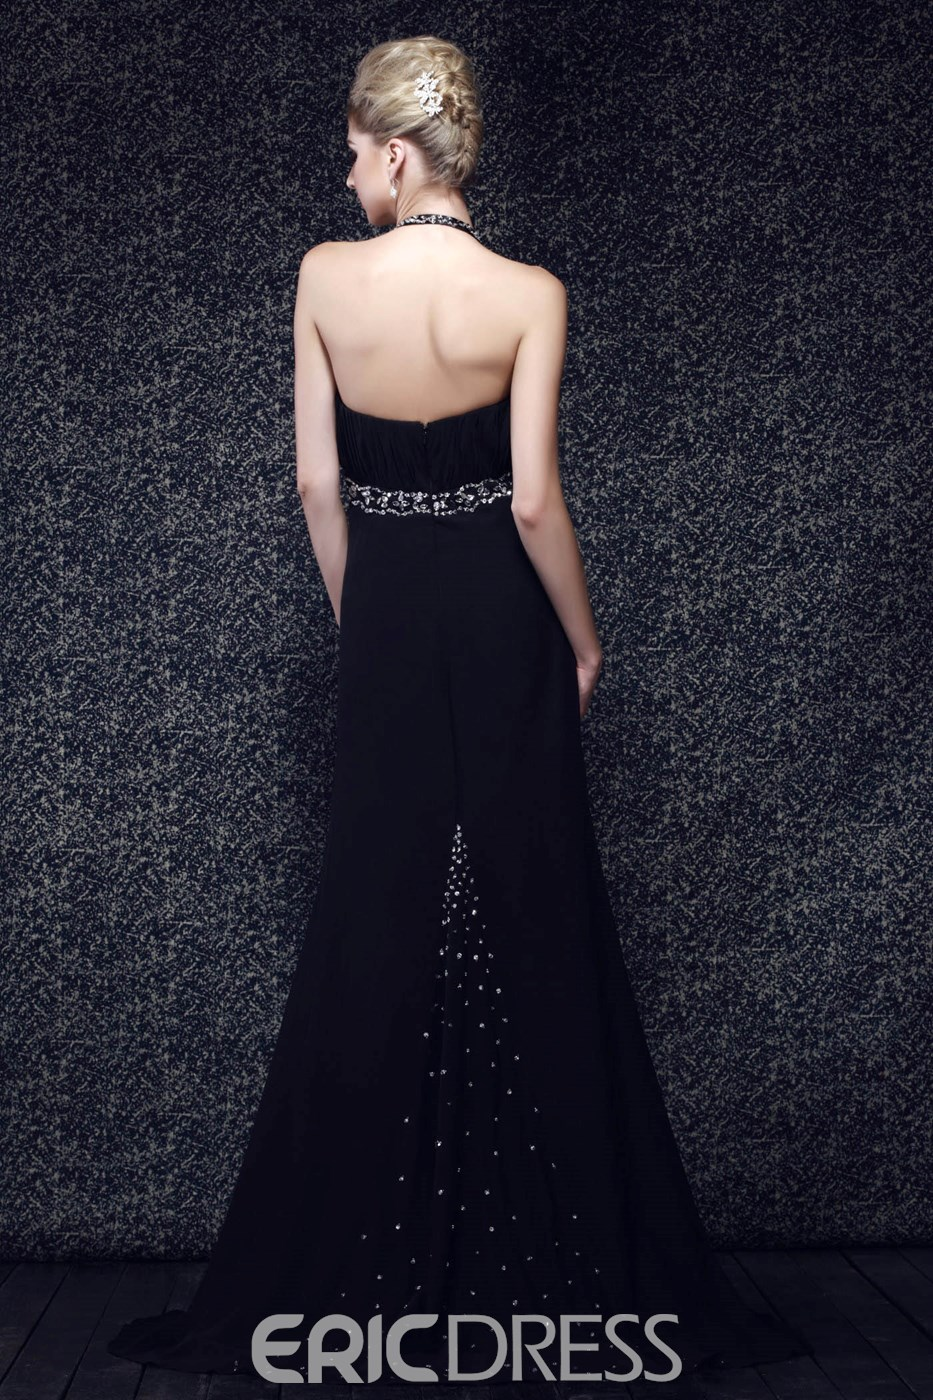 Slit V neck with Beaded Halter in Empire Sheath Slit Skirt Sexy Dasha's Evening Dress